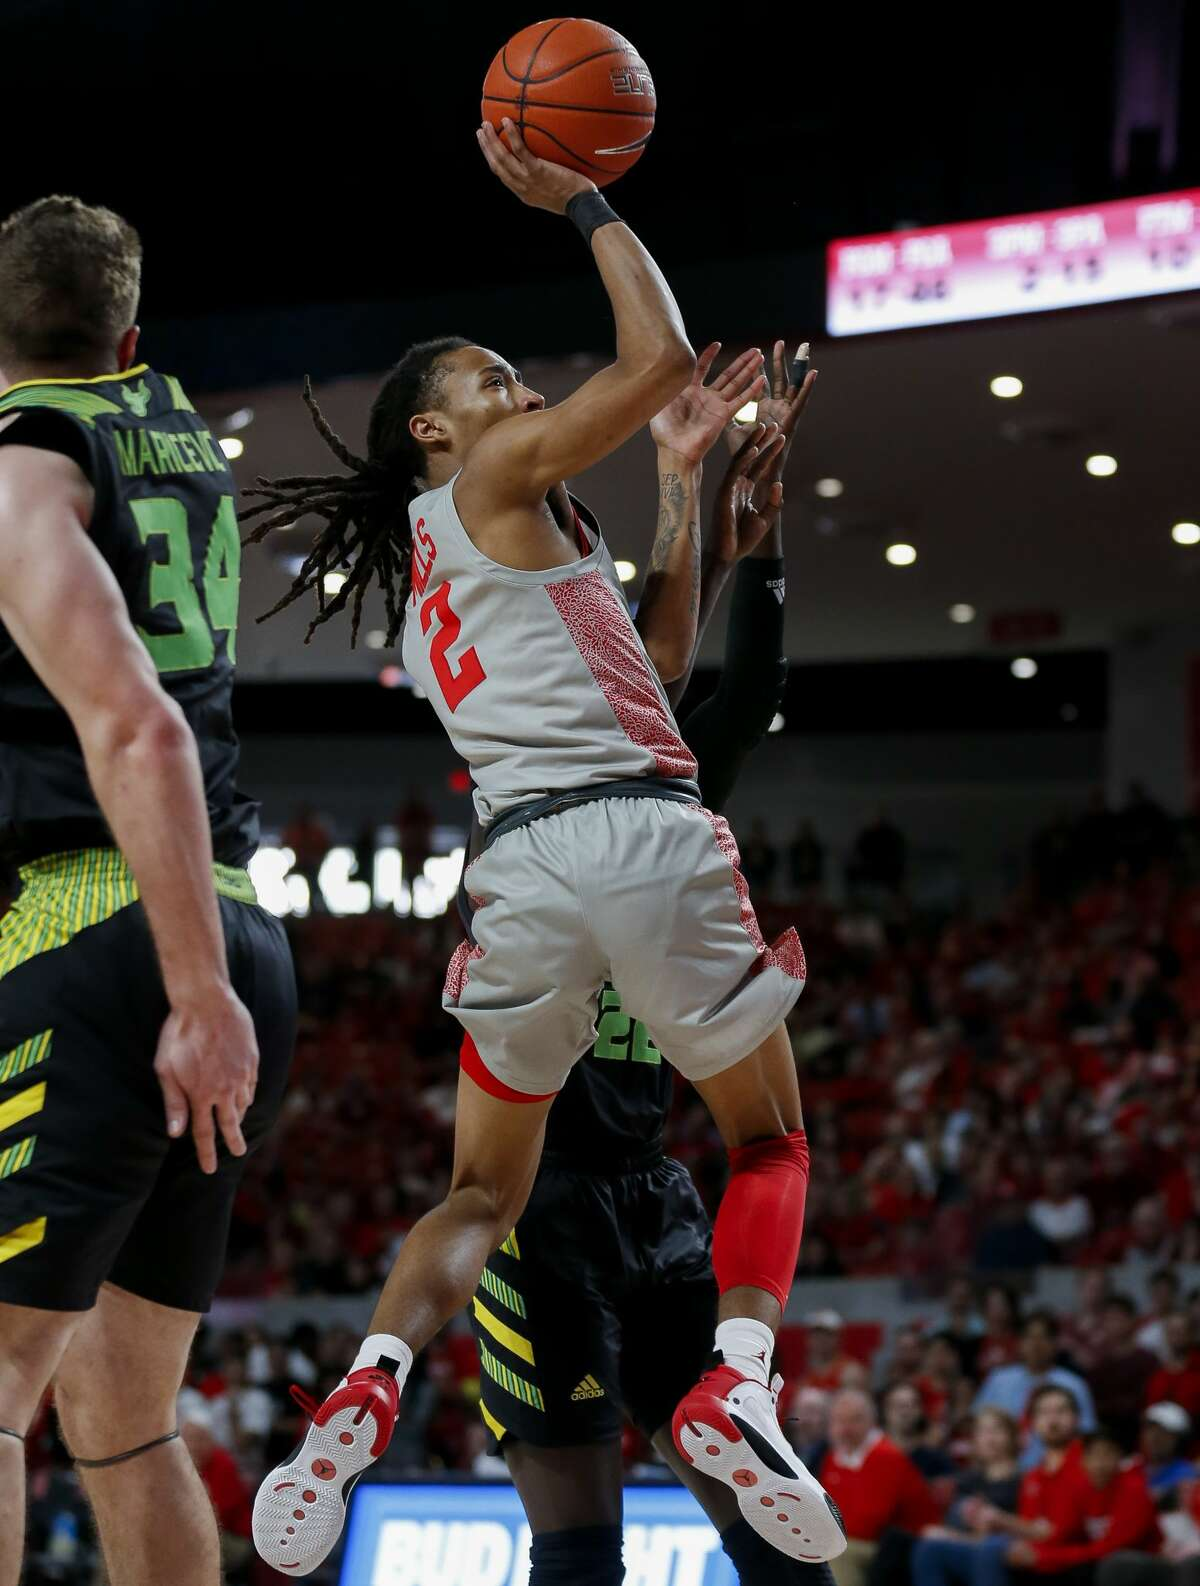 Houston Cougars guard Caleb Mills (2) shoots the ball against the South Florida Bulls during the second half of an NCAA game at the Fertitta Center Sunday, Jan. 26, 2020, in Houston. The Cougars won 68-49.